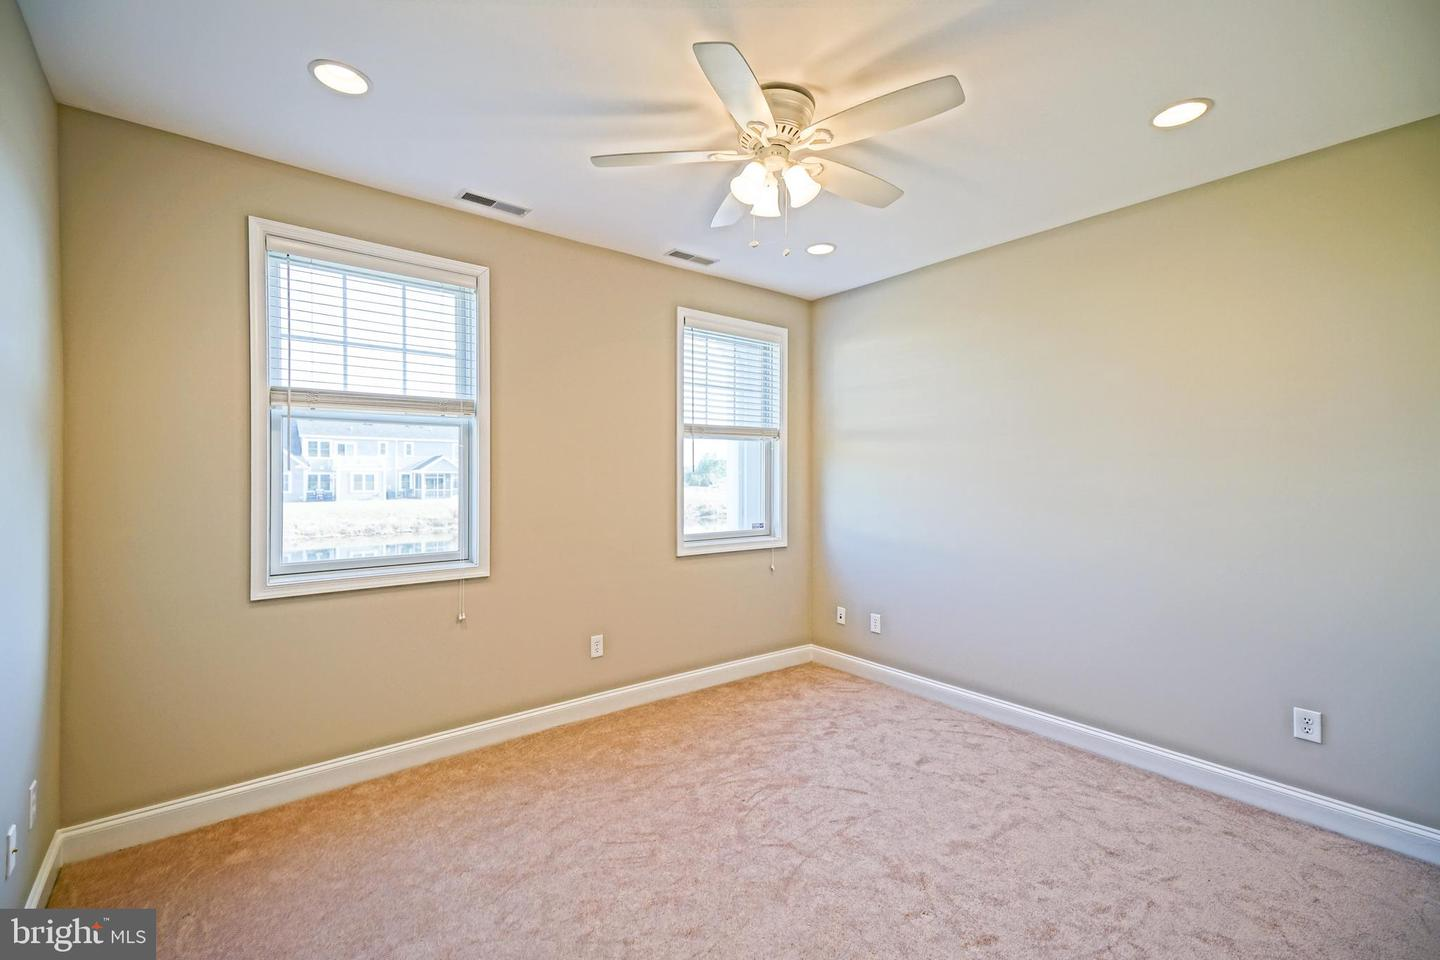 DESU131502-301403851783-2019-09-28-15-33-06 35065 Zwaanendael Ave | Lewes, DE Real Estate For Sale | MLS# Desu131502  - Lee Ann Group